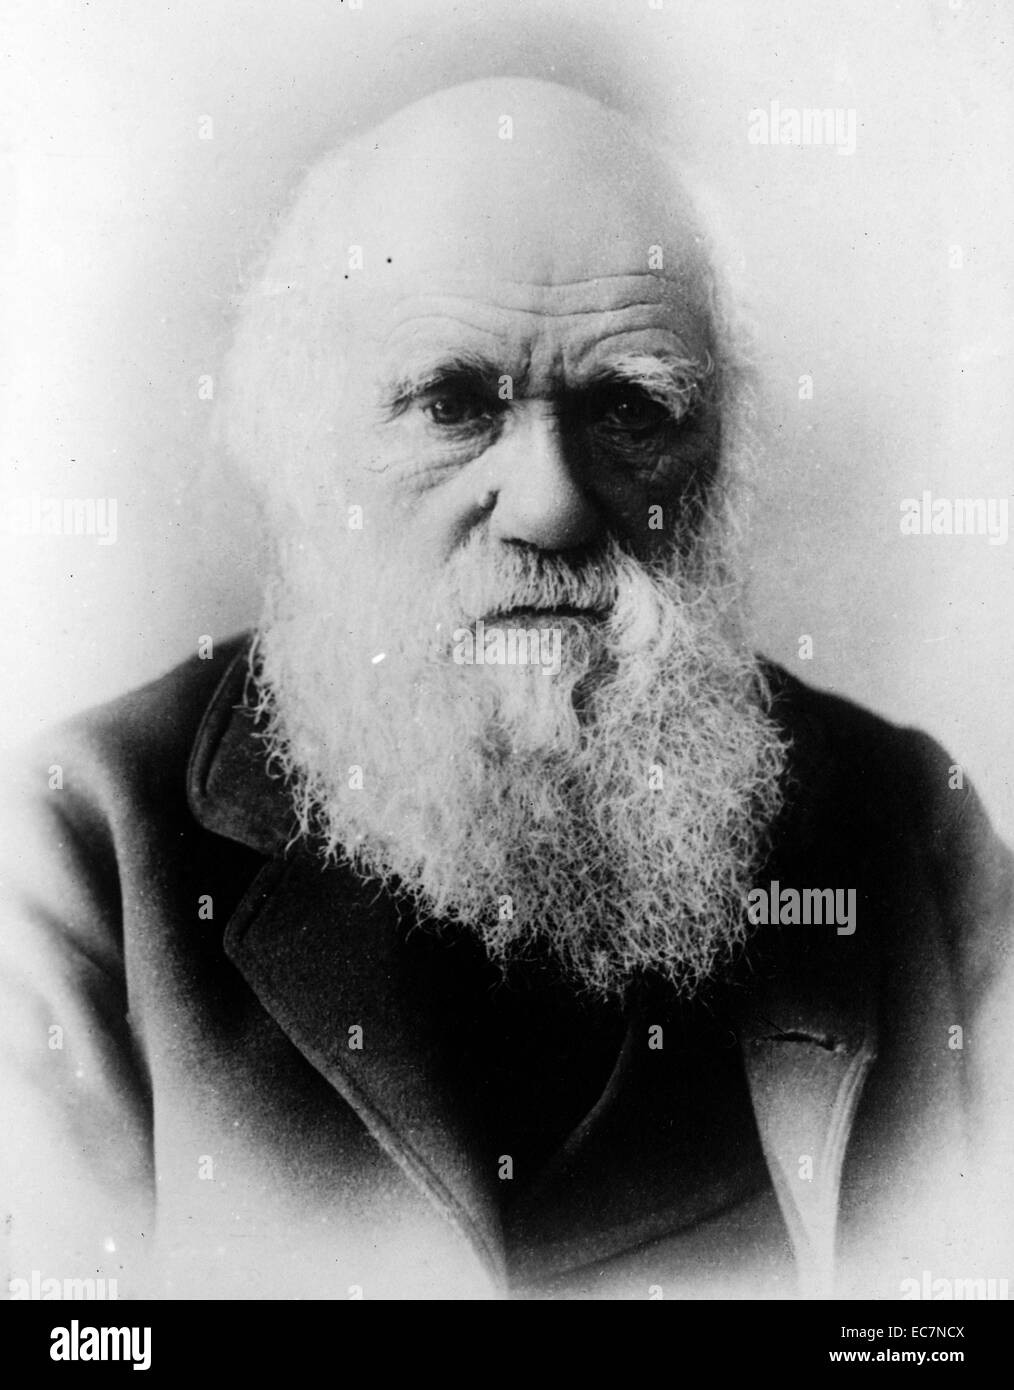 a biography of charles darwin an english naturalist Charles darwin was an english naturalist who studied variation in plants and animals during a five-year voyage around the world in the 19th century.